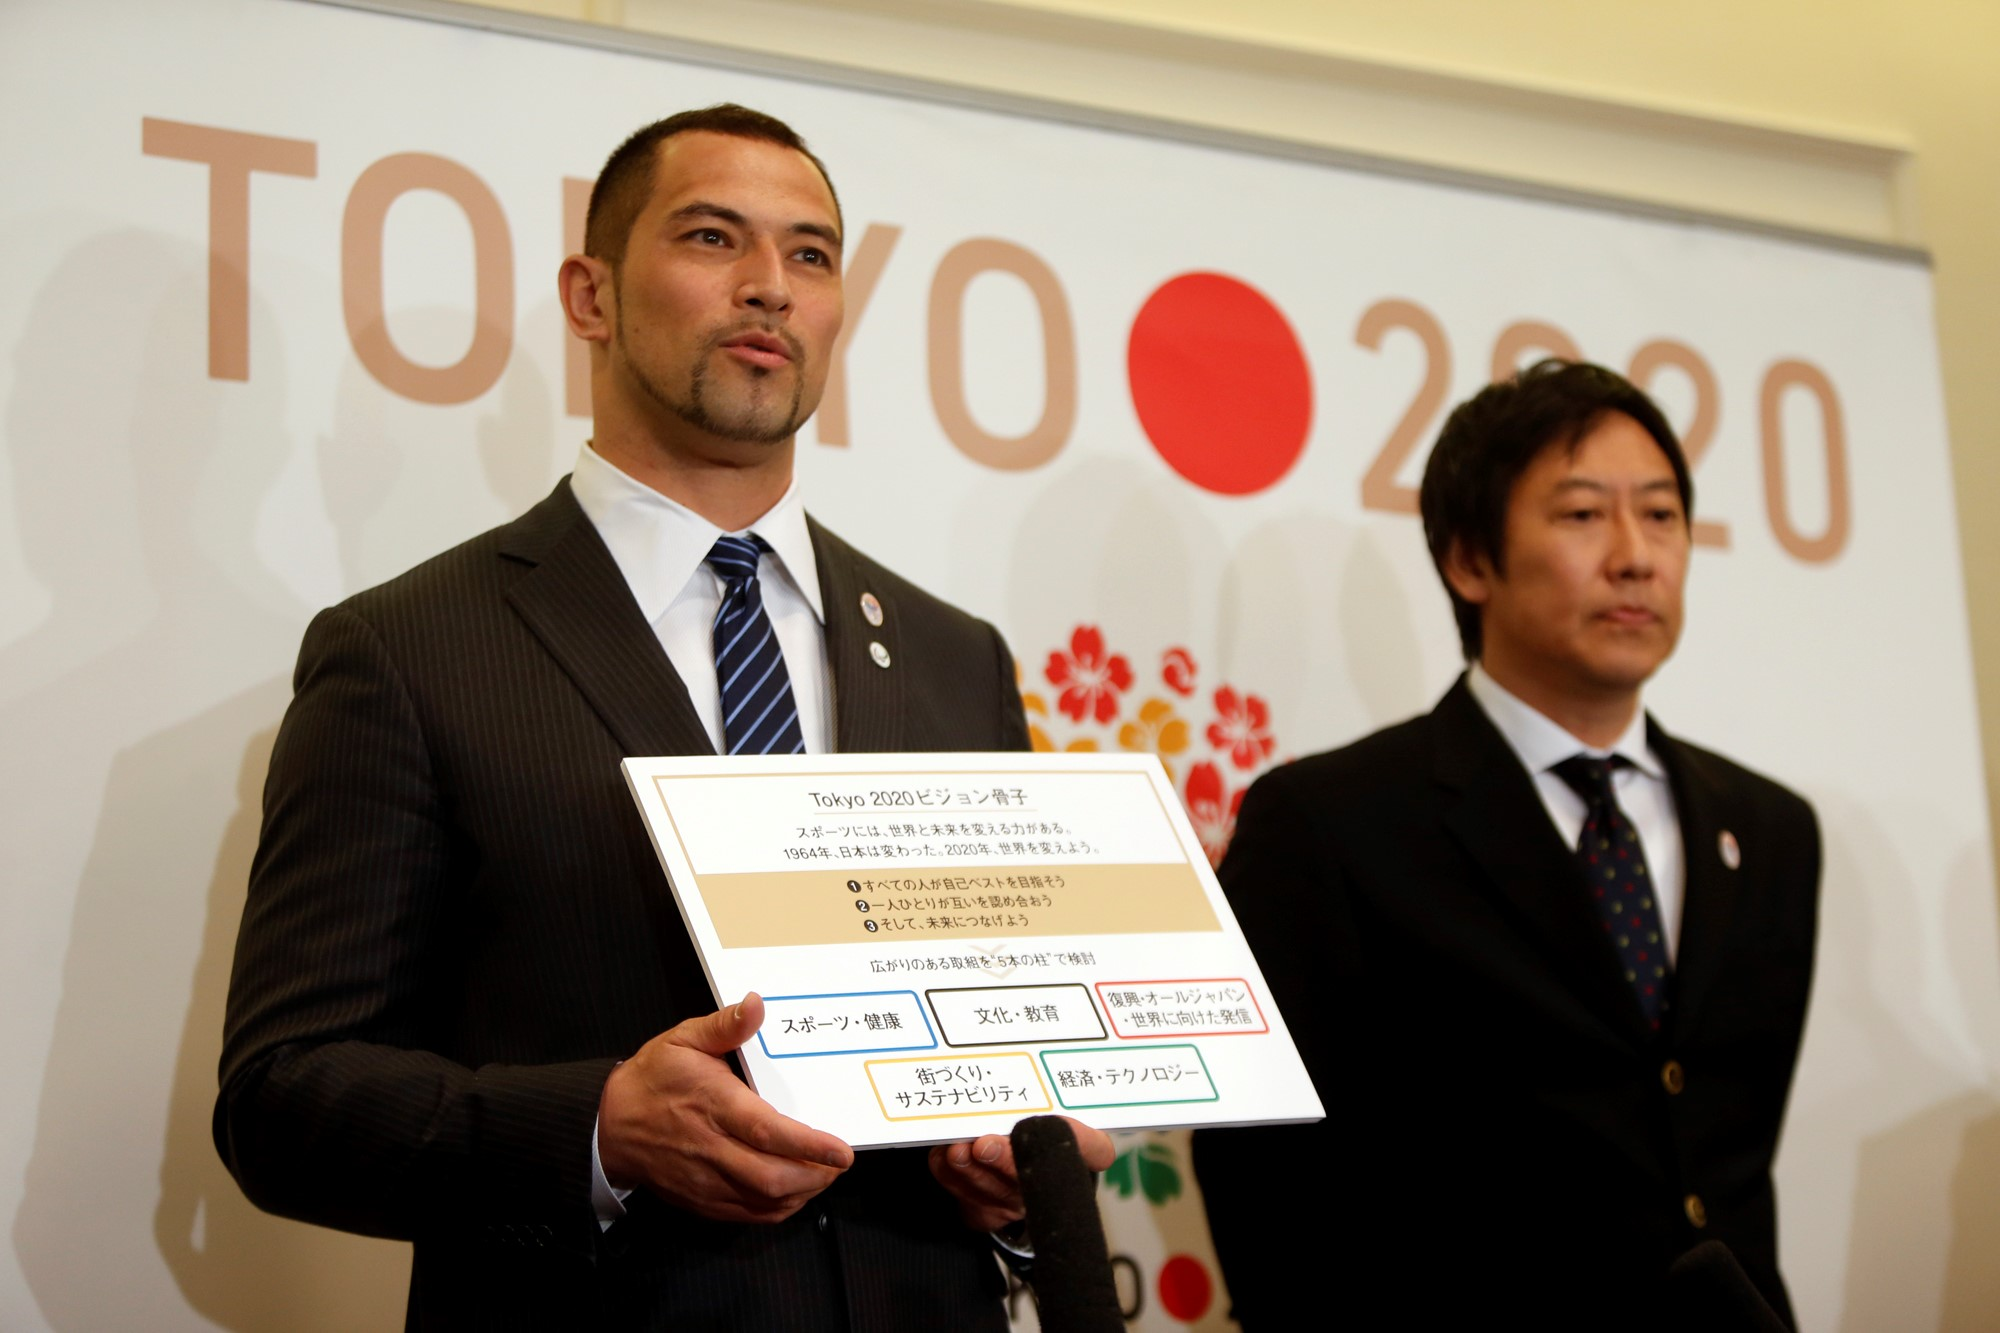 Koji Murofushi will lead the new 2020 Young Athletes' project which is hoped will encourage young athletes to set the Tokyo Olympic Games as their sporting goal ©Tokyo 2020